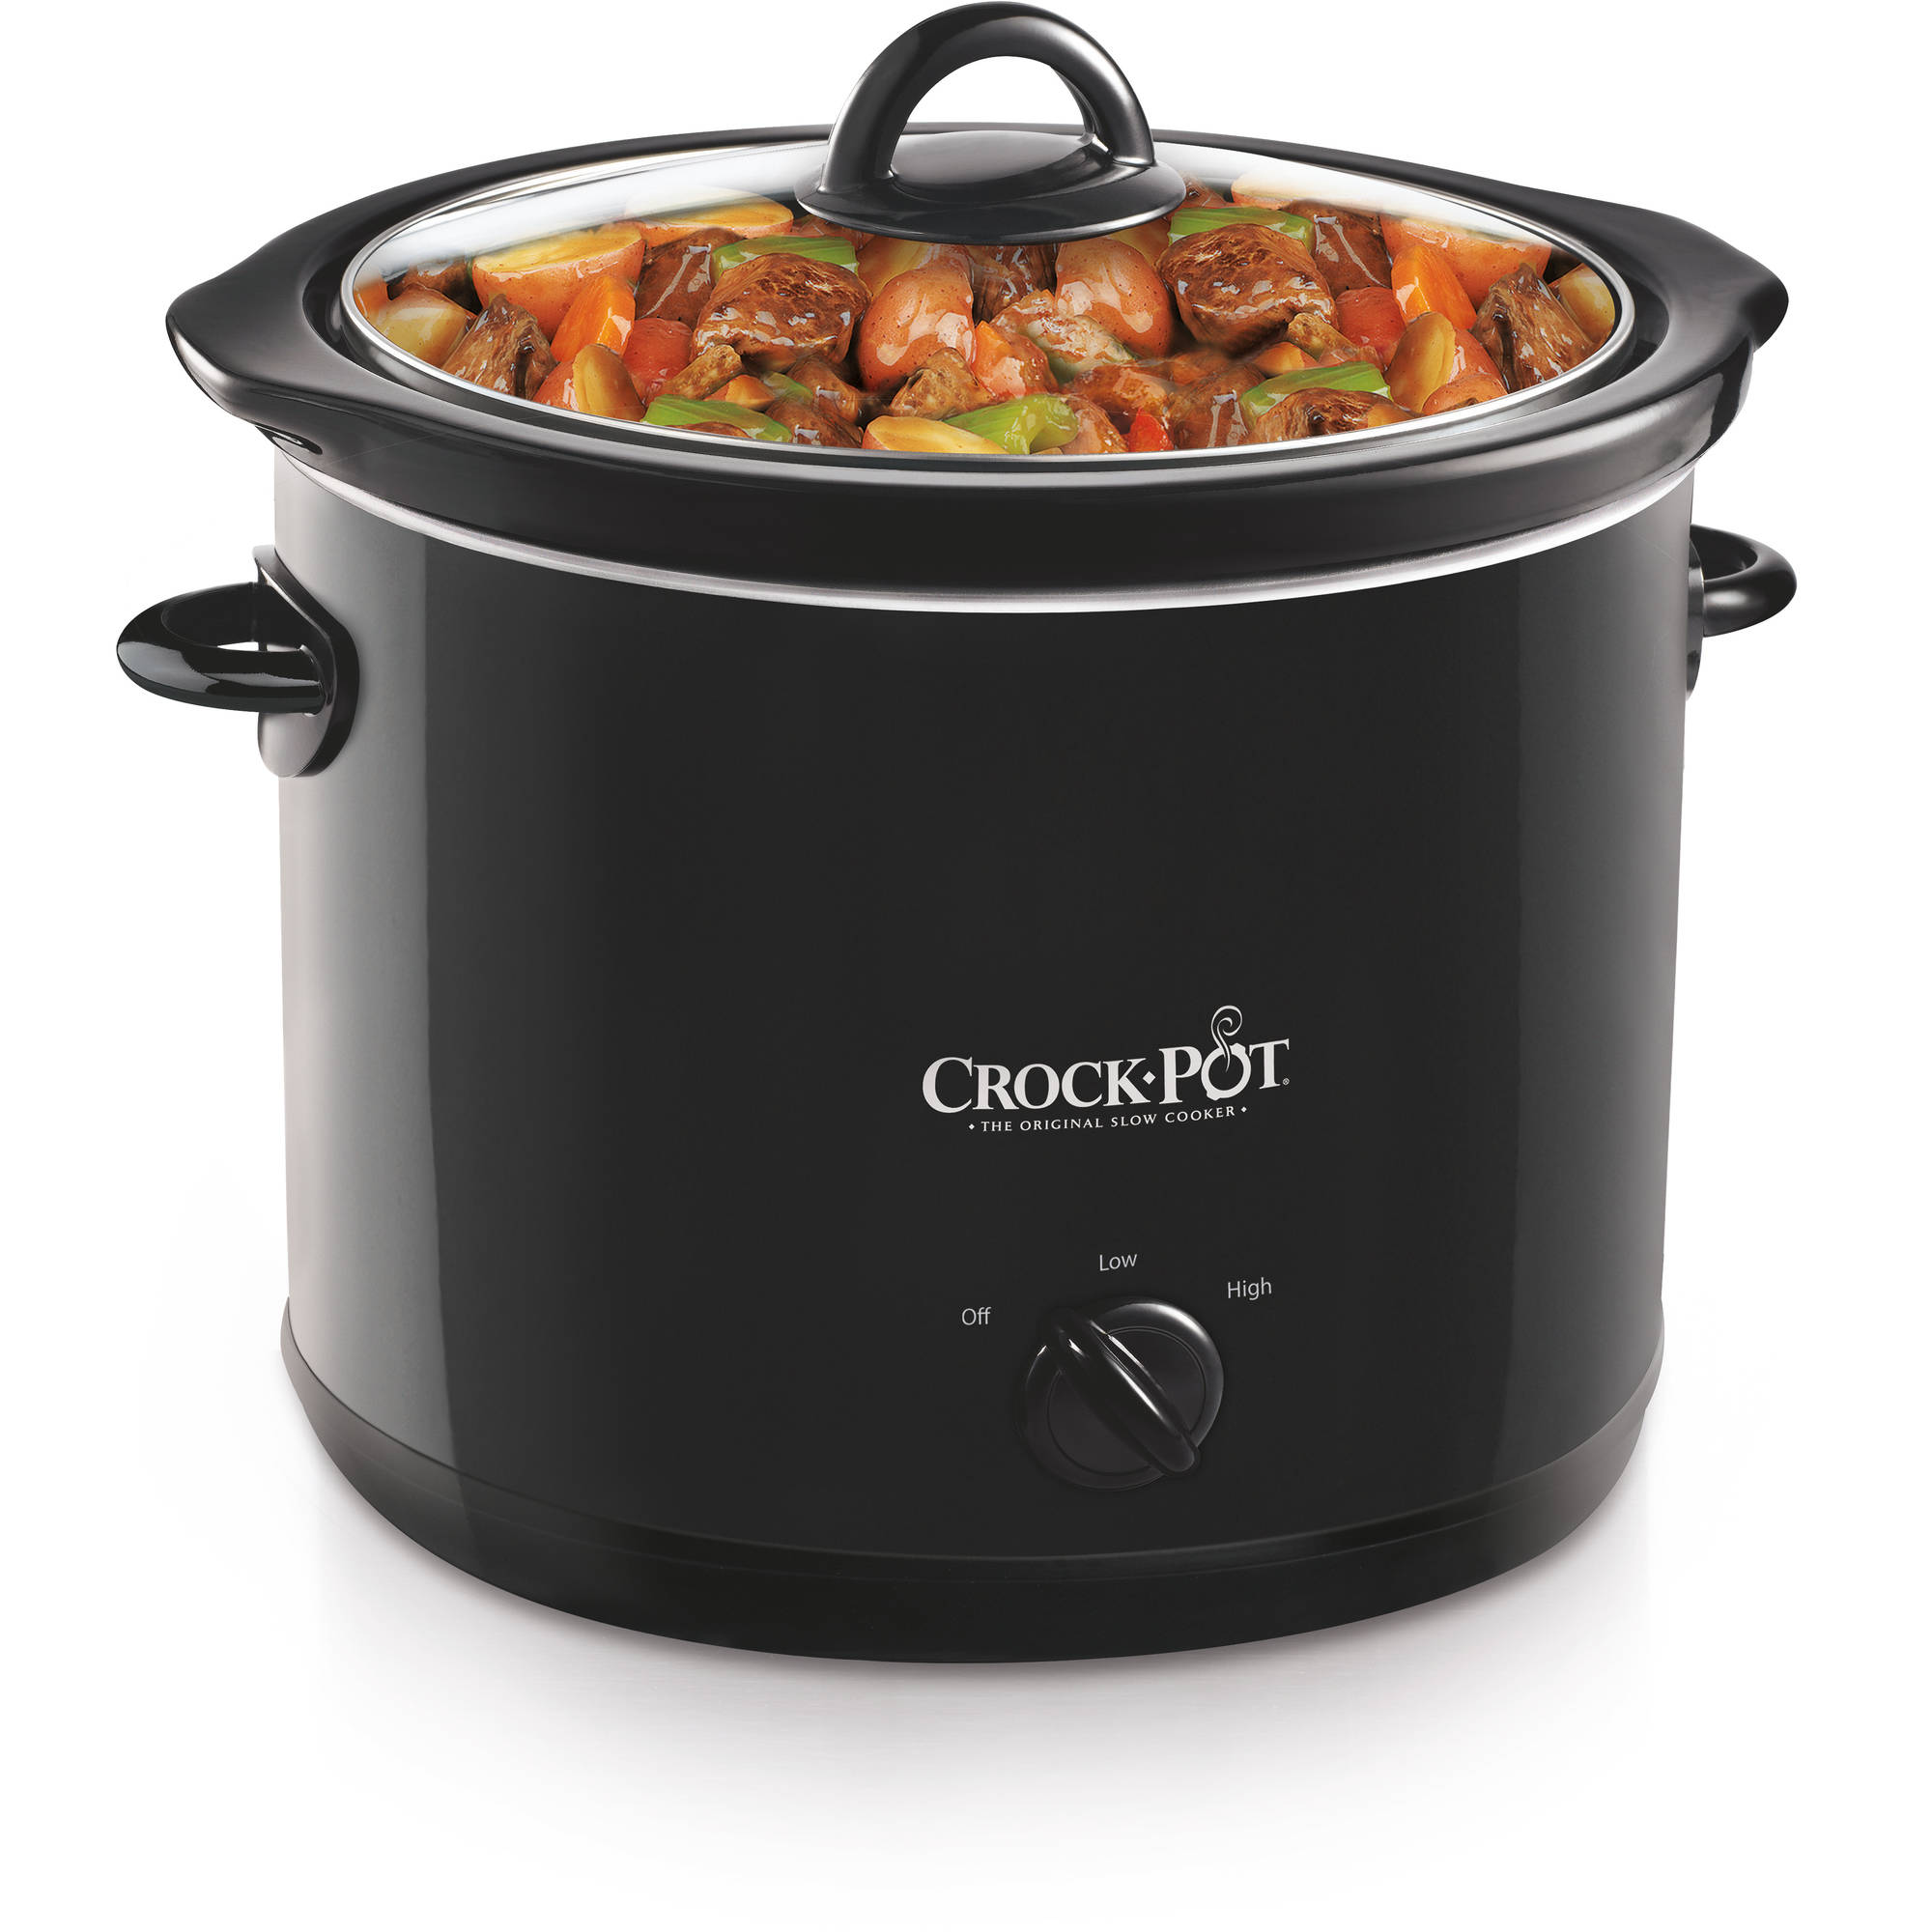 Crock-Pot 4-Quart Slow Cooker, Black, SCR400-B